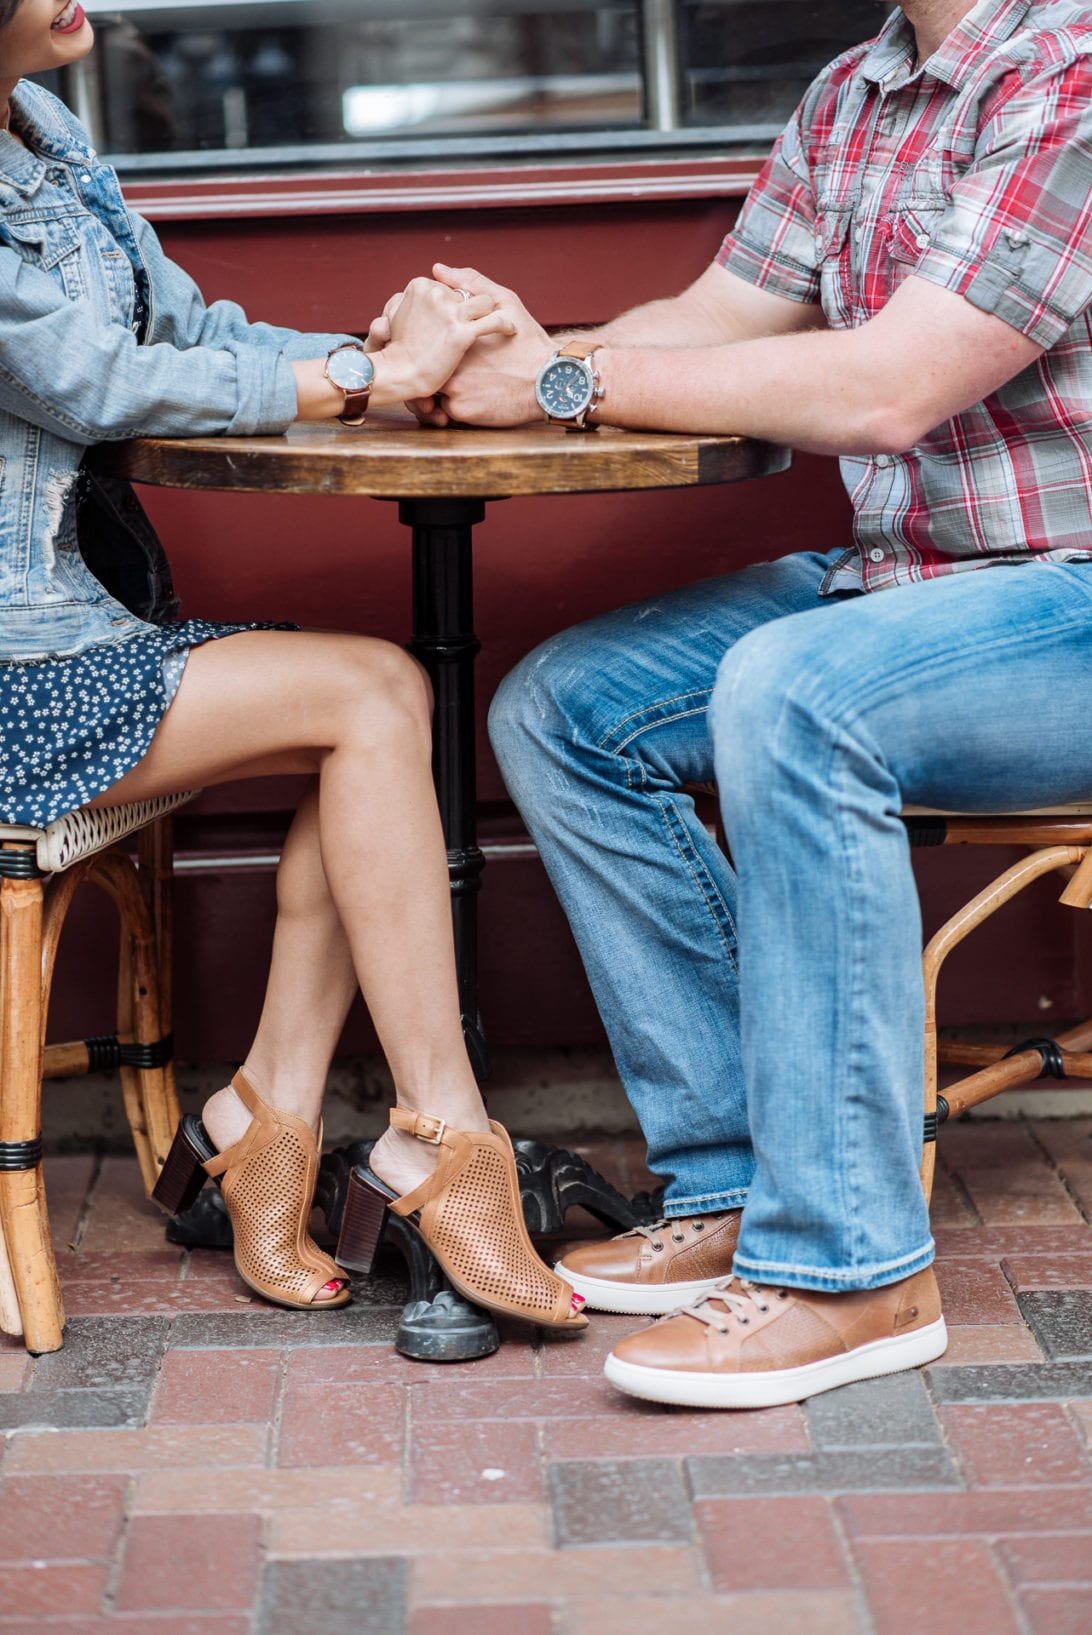 Rockport shoes, Zappos shoes, Rockport Collie, Rockport total motion perforated shortie, date night ideas, budget friendly date ideas, marriage tips, couples tip, parenting tips, couple style